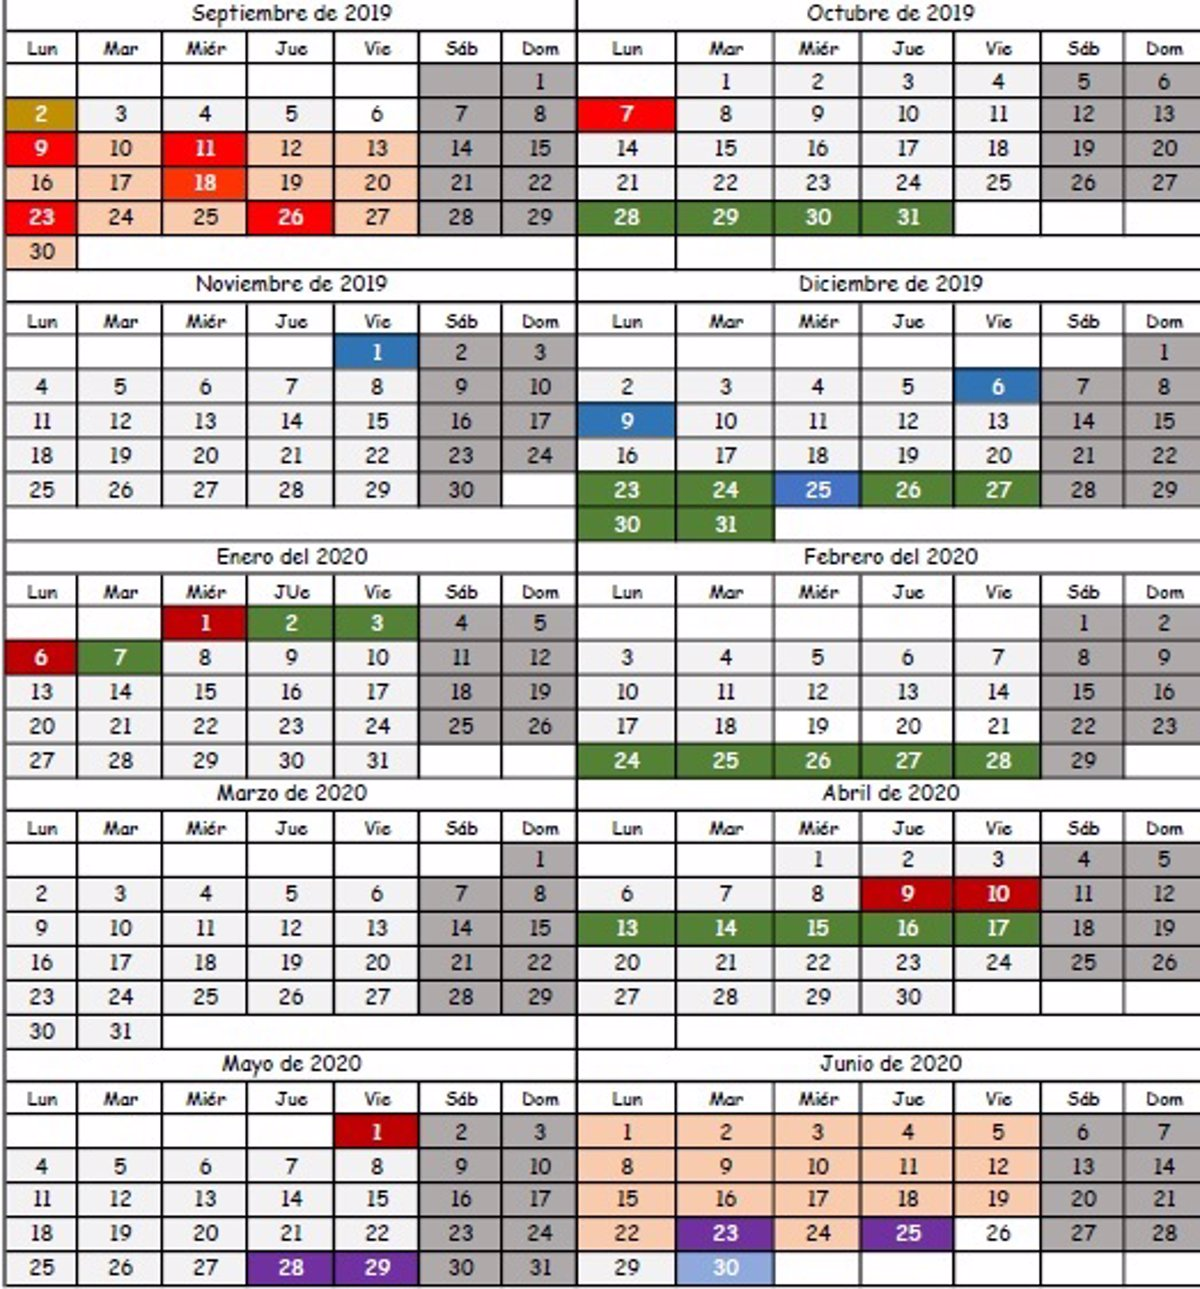 Calendario 2019 Escolar 2020 Madrid.Publicado El Calendario Escolar Para El Curso 2019 2020